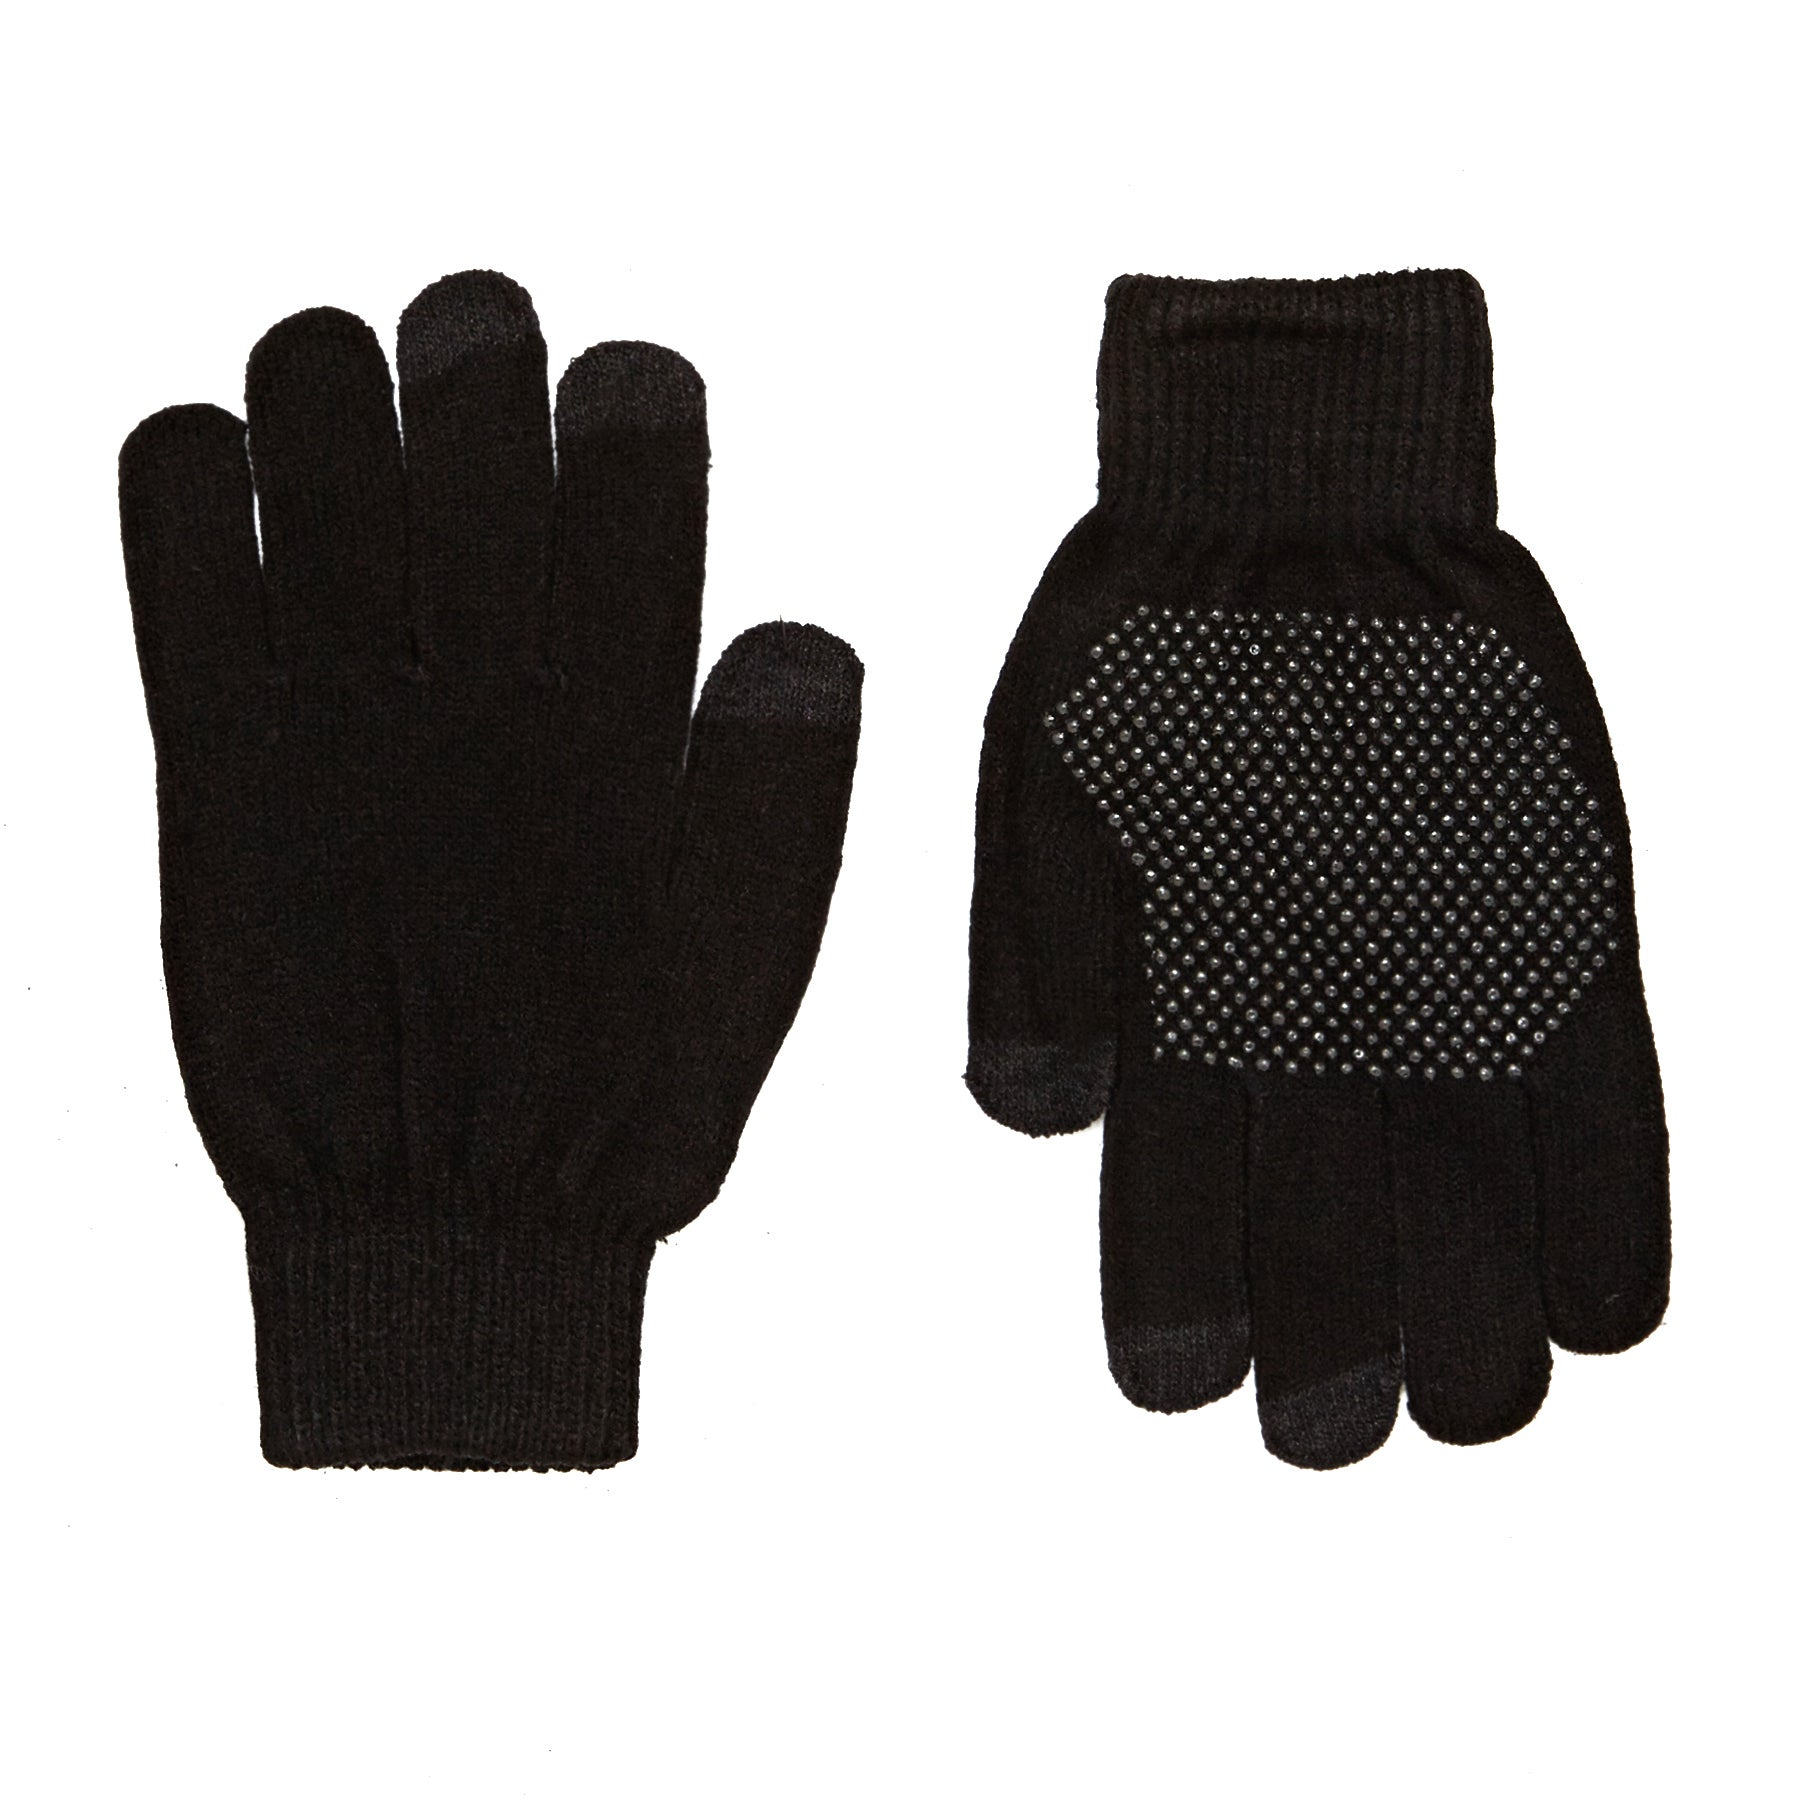 Solta Warm Knitted Palm Grip Gloves - Black